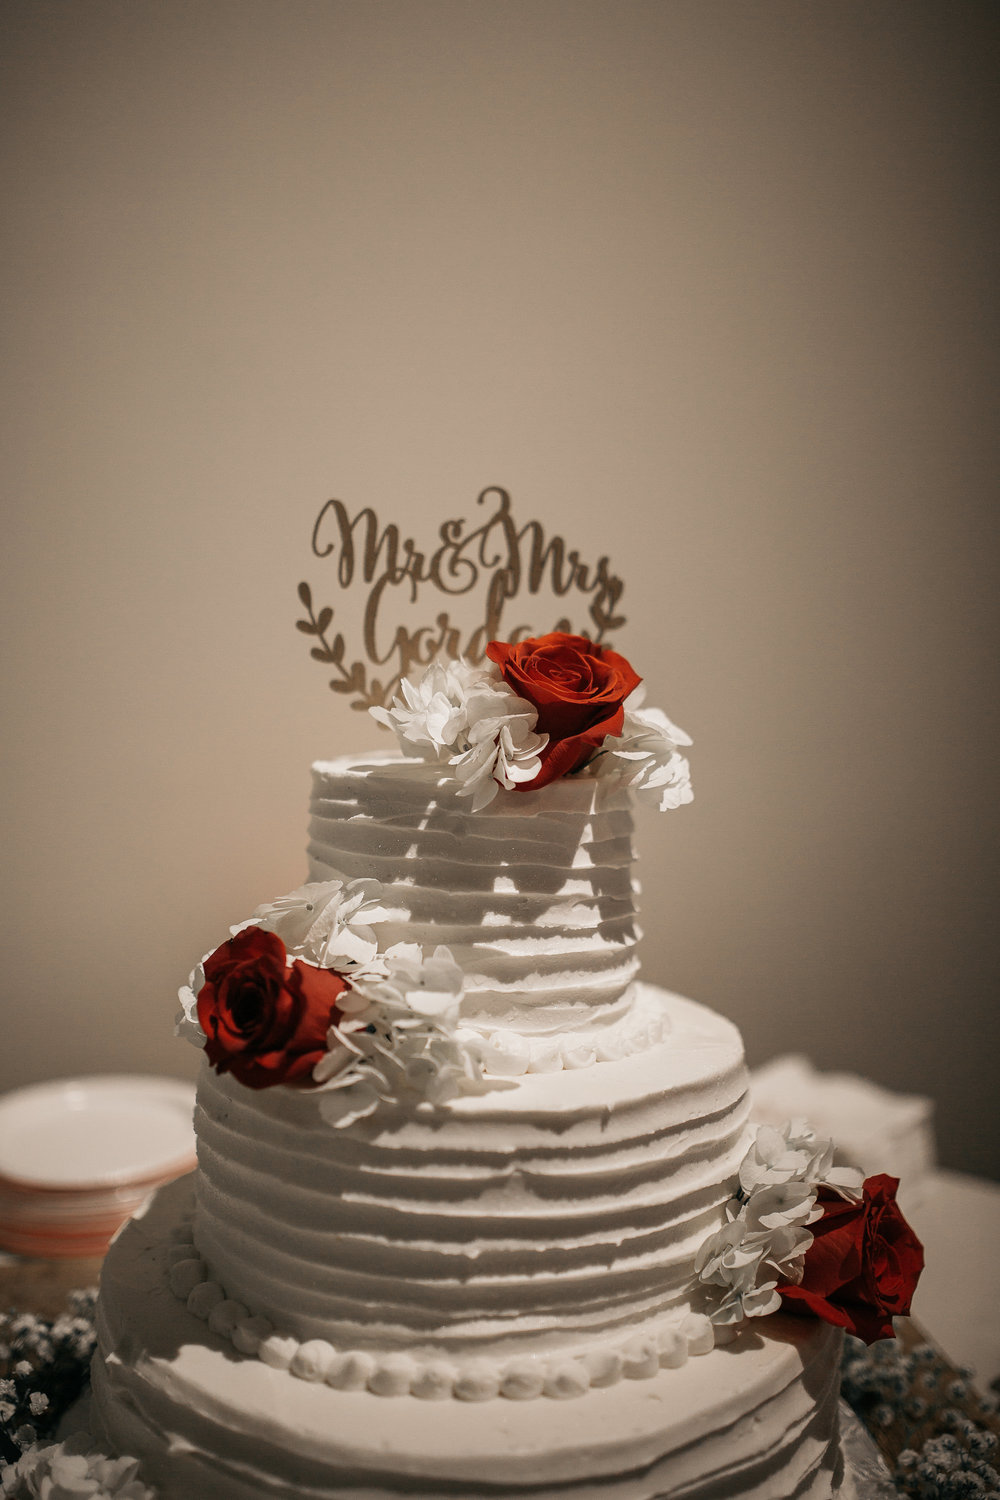 memphis-wedding-photographer-cassie-cook-photography-wedding-cake